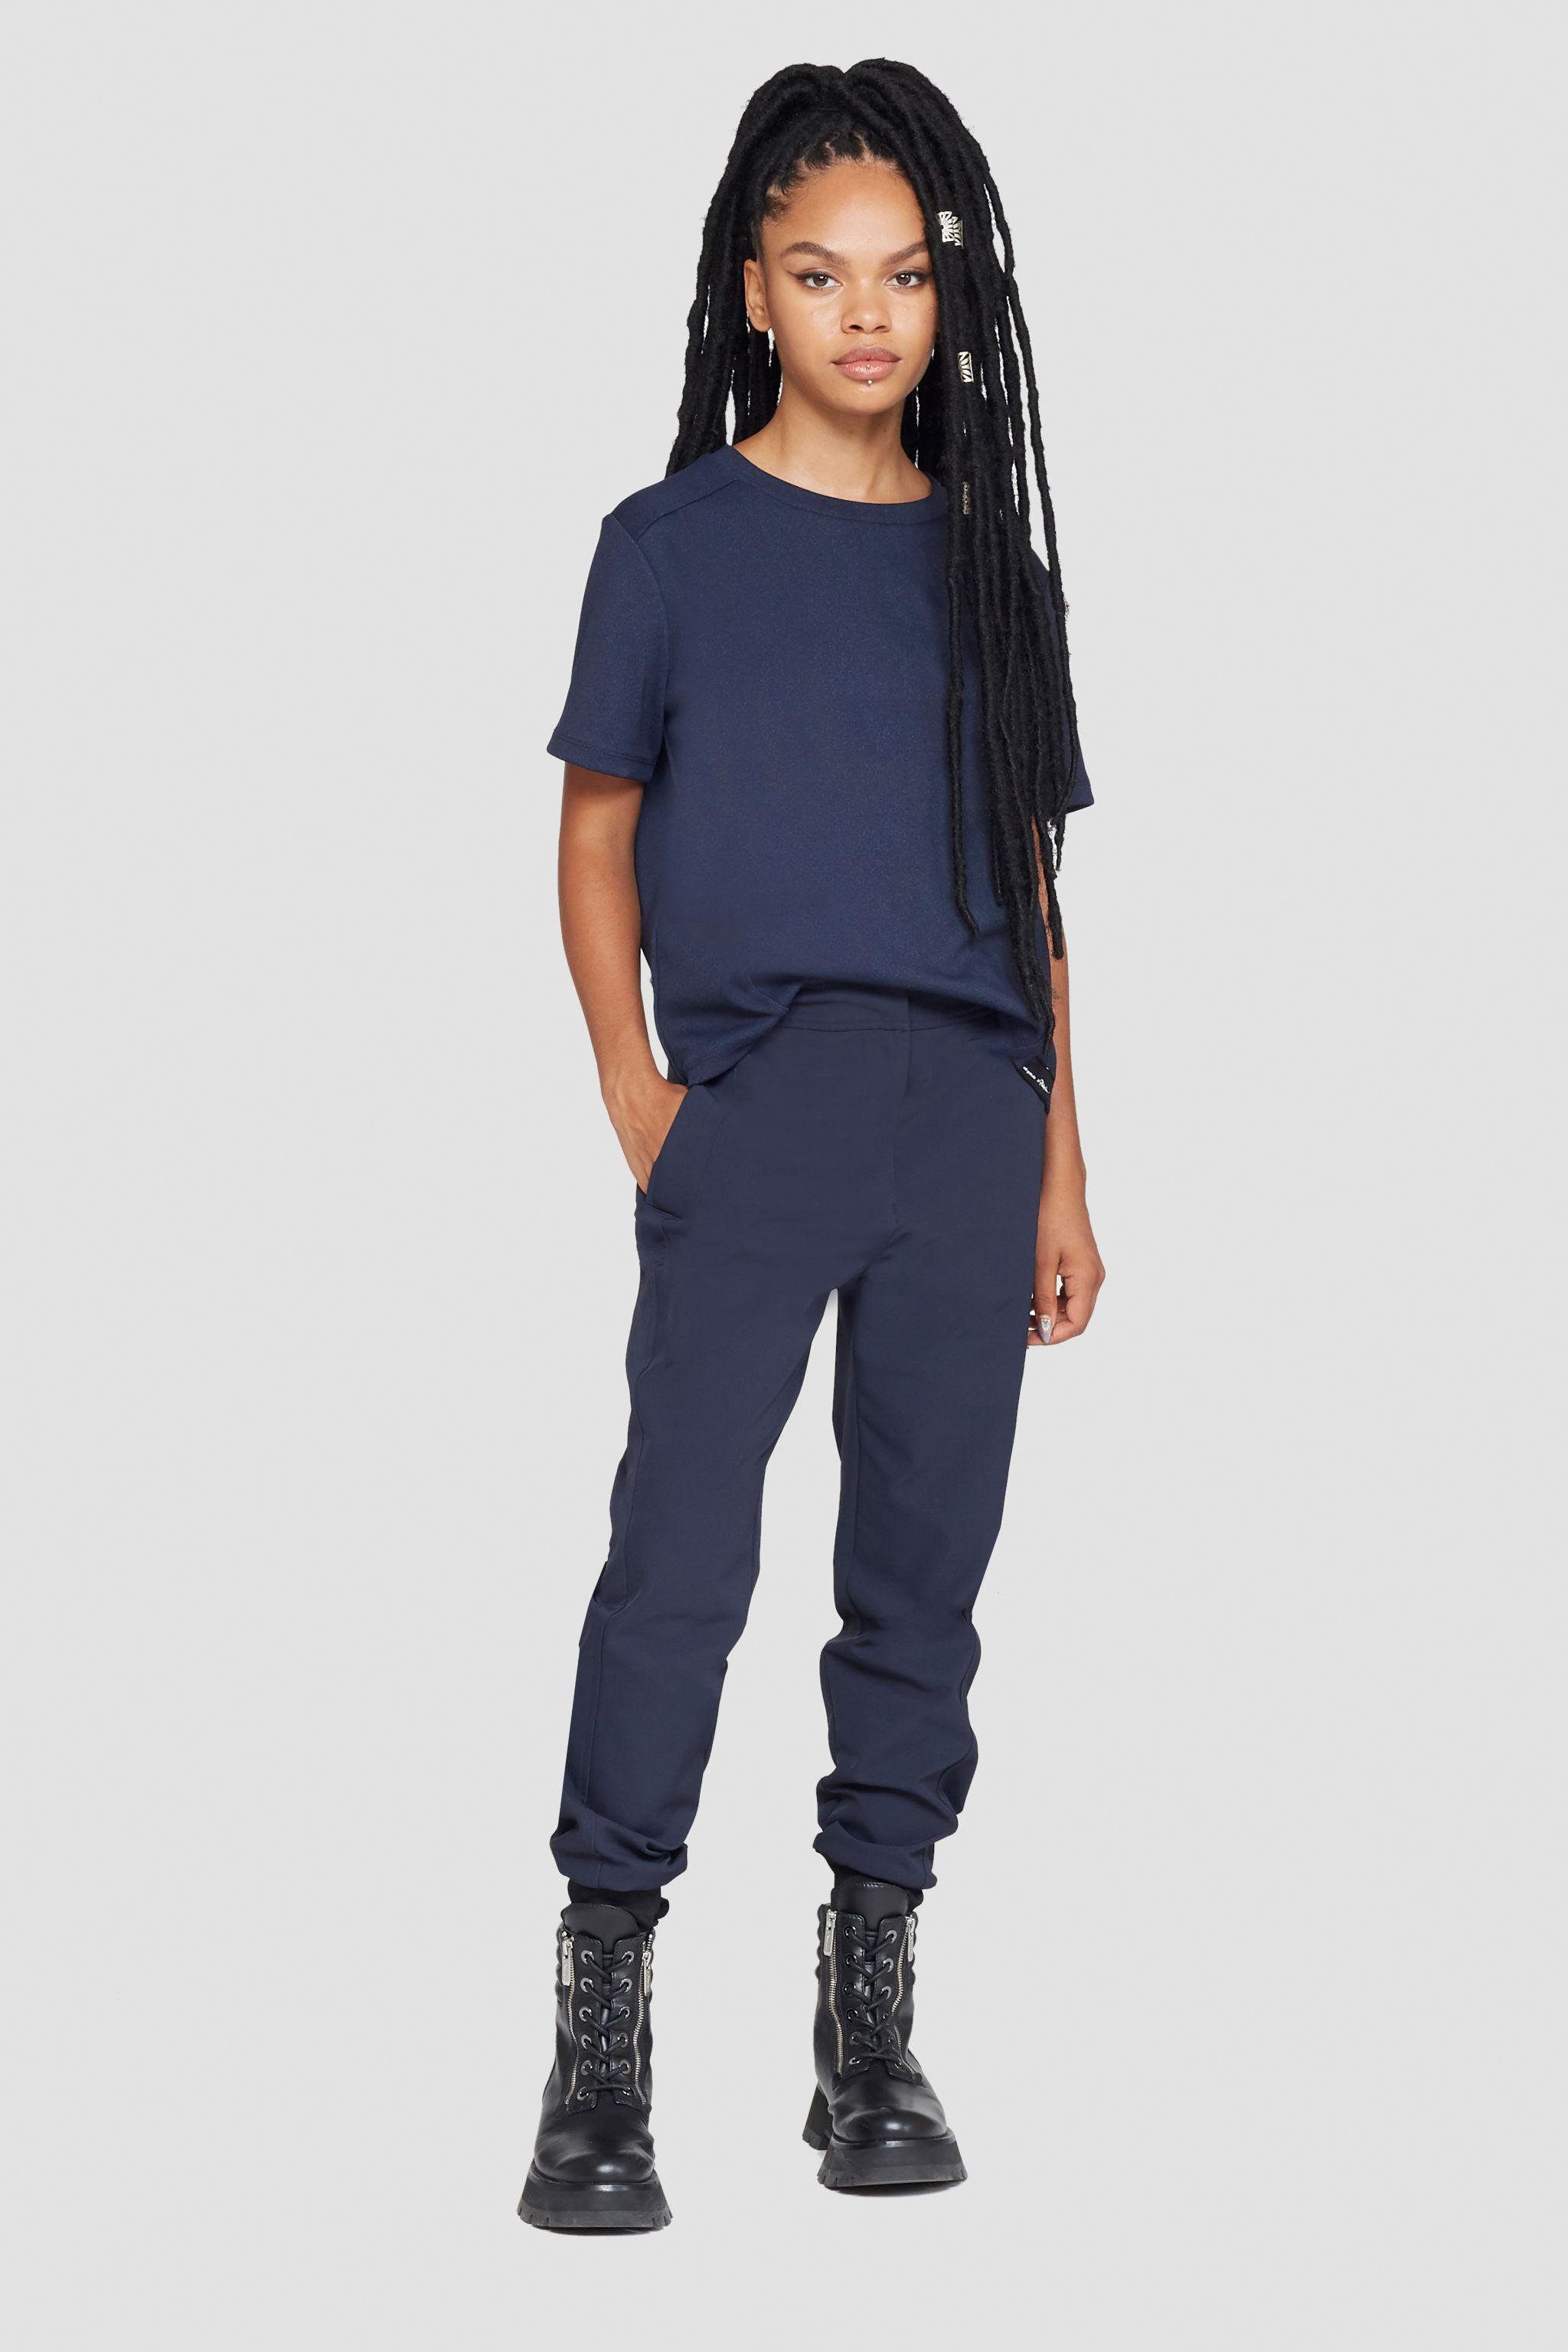 The Everyday Tailored Jogger